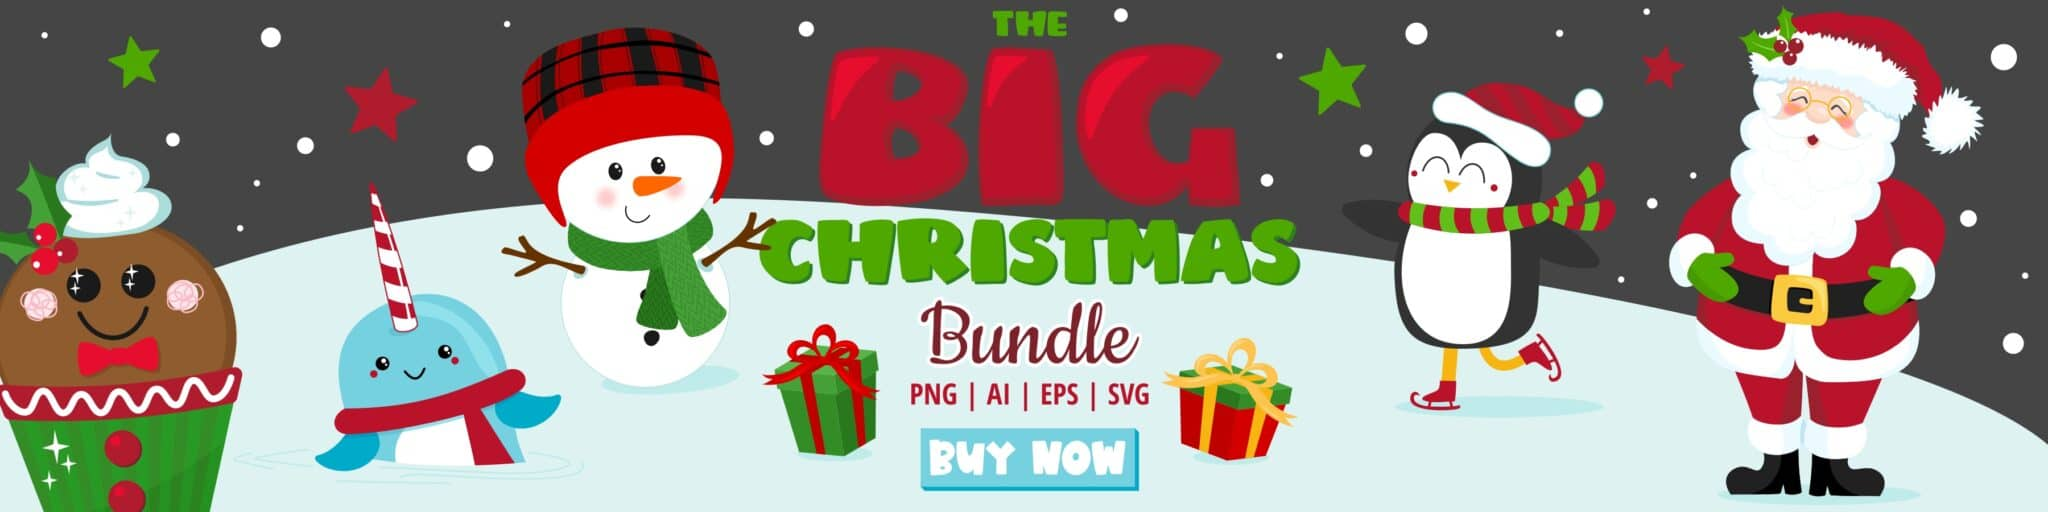 Assorted Christmas Clipart Bundle Pack